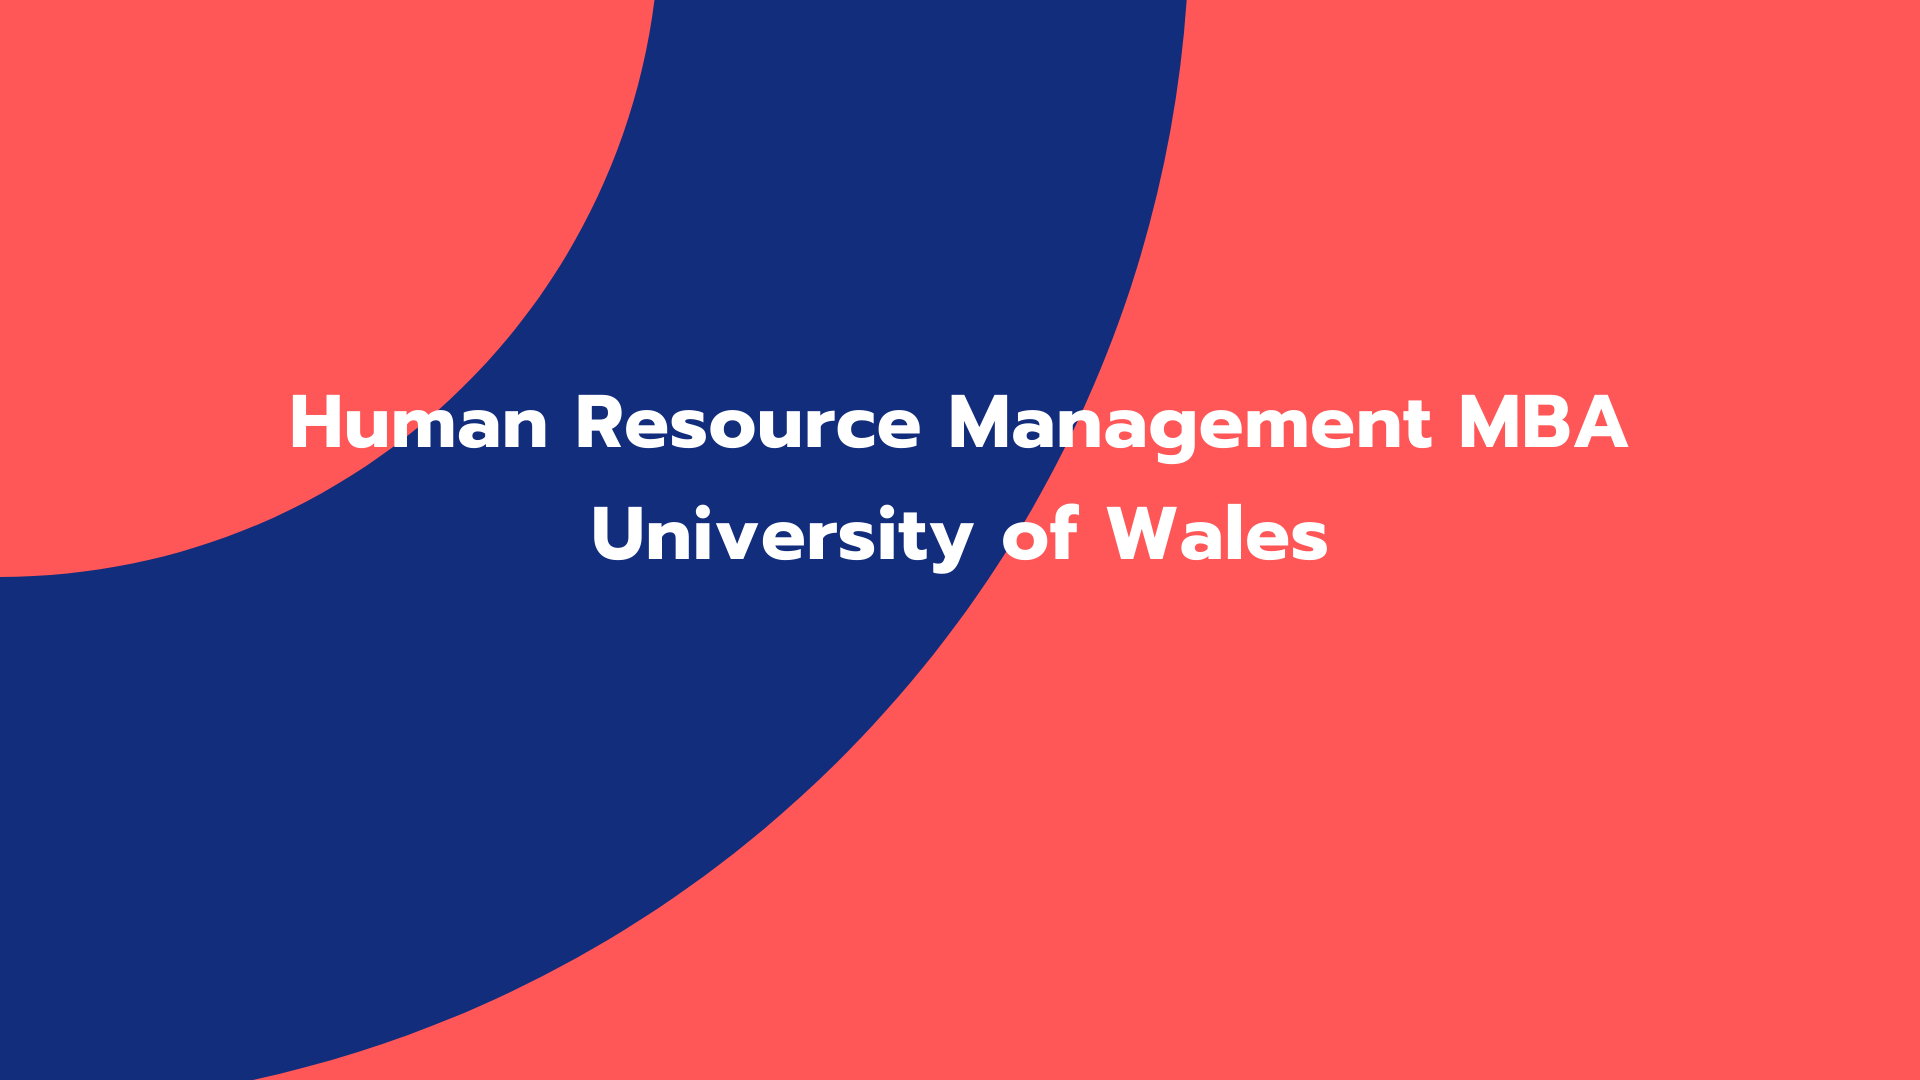 Human Resource Management MBA University of Wales